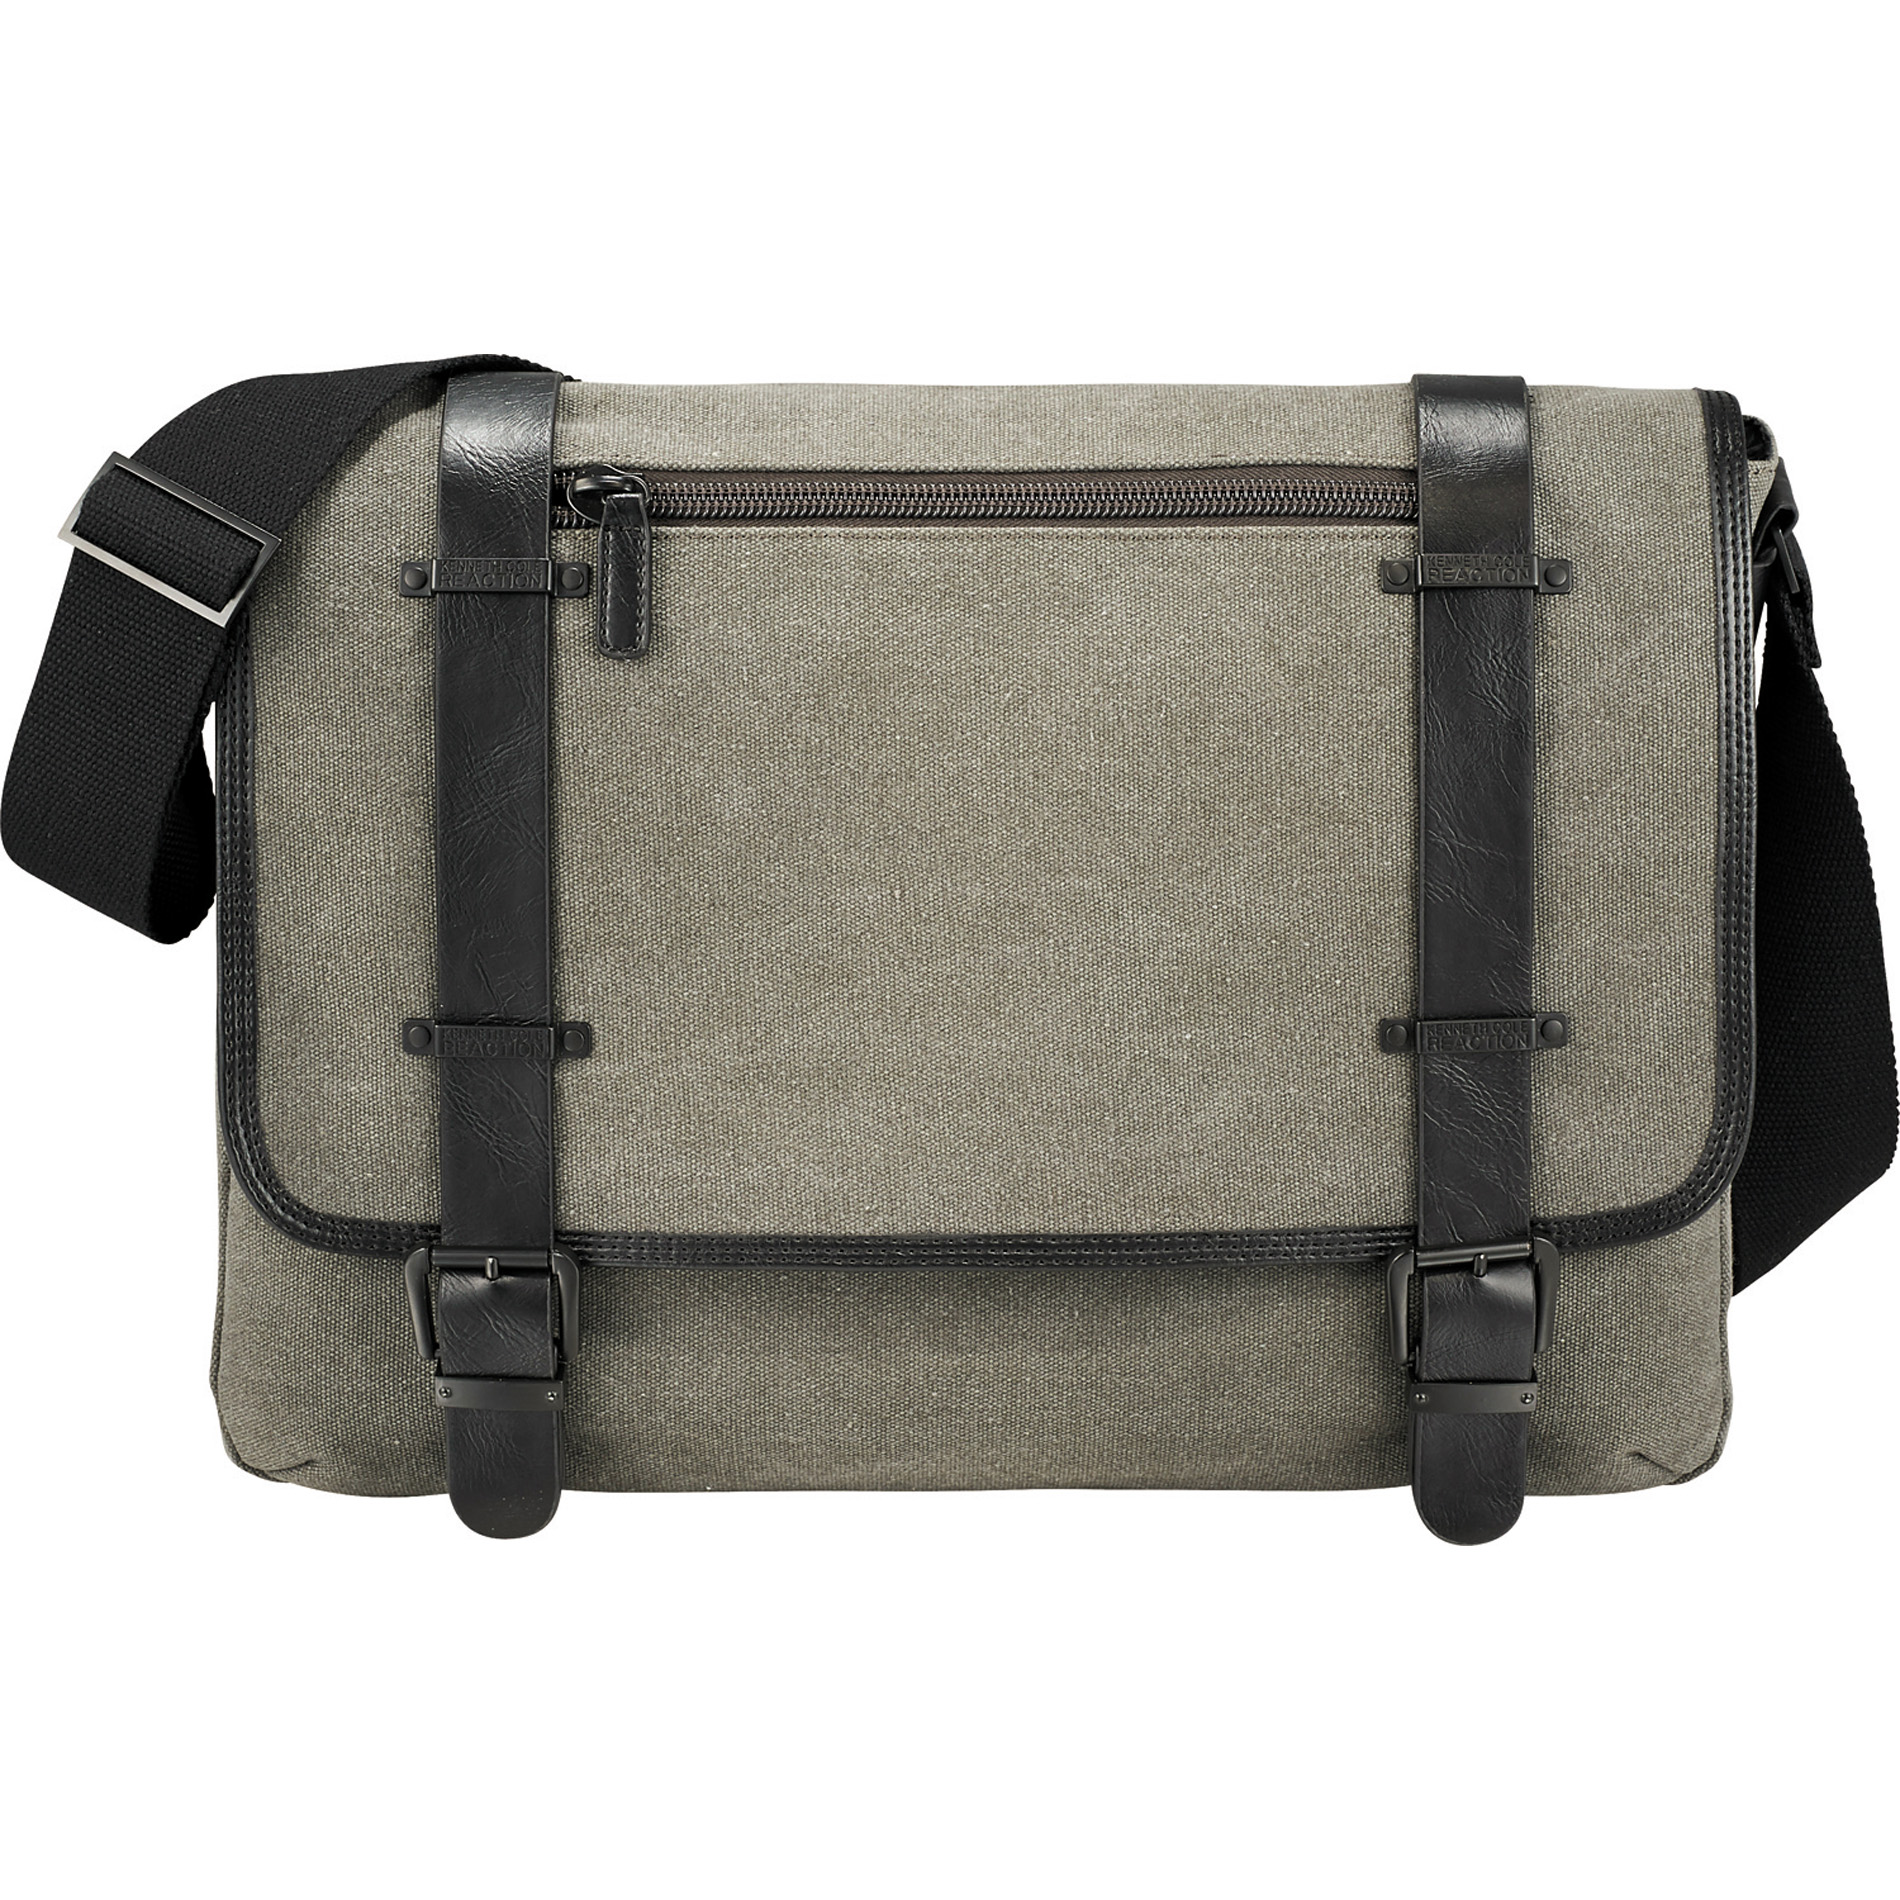 "Kenneth Cole 9950-61 - Canvas 17"" Computer Messenger"